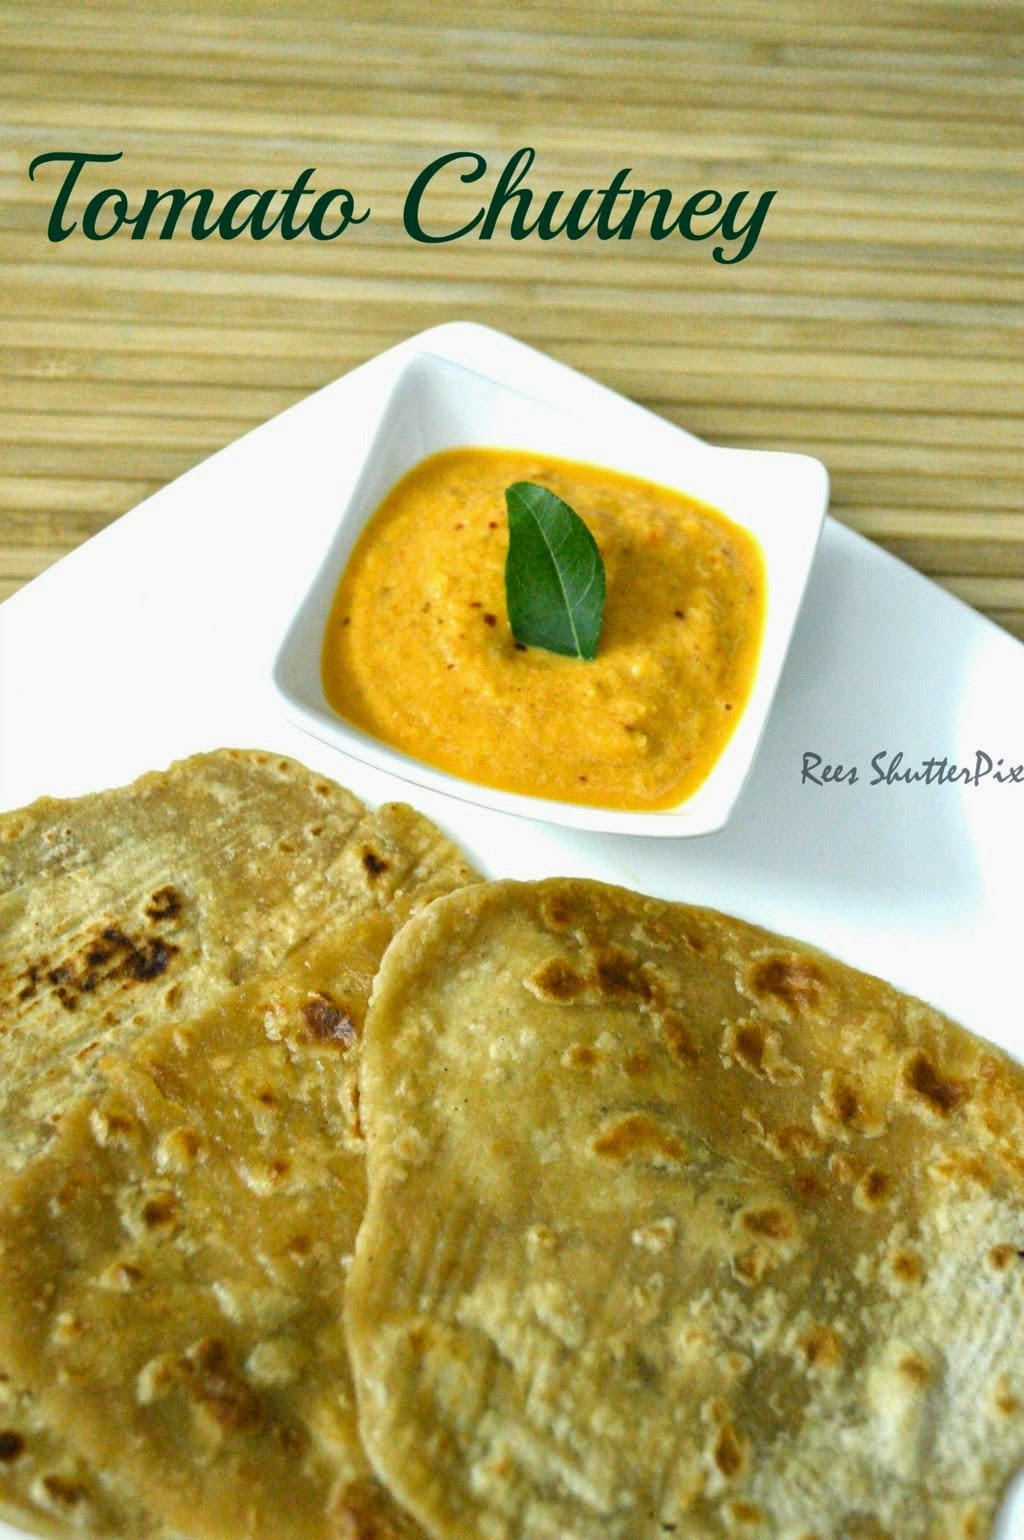 Chutney Varieties, Idli Dosa Side Dish Recipes, Side dish Recipes, thakali chutney, tomato chutney, chutney for dosa